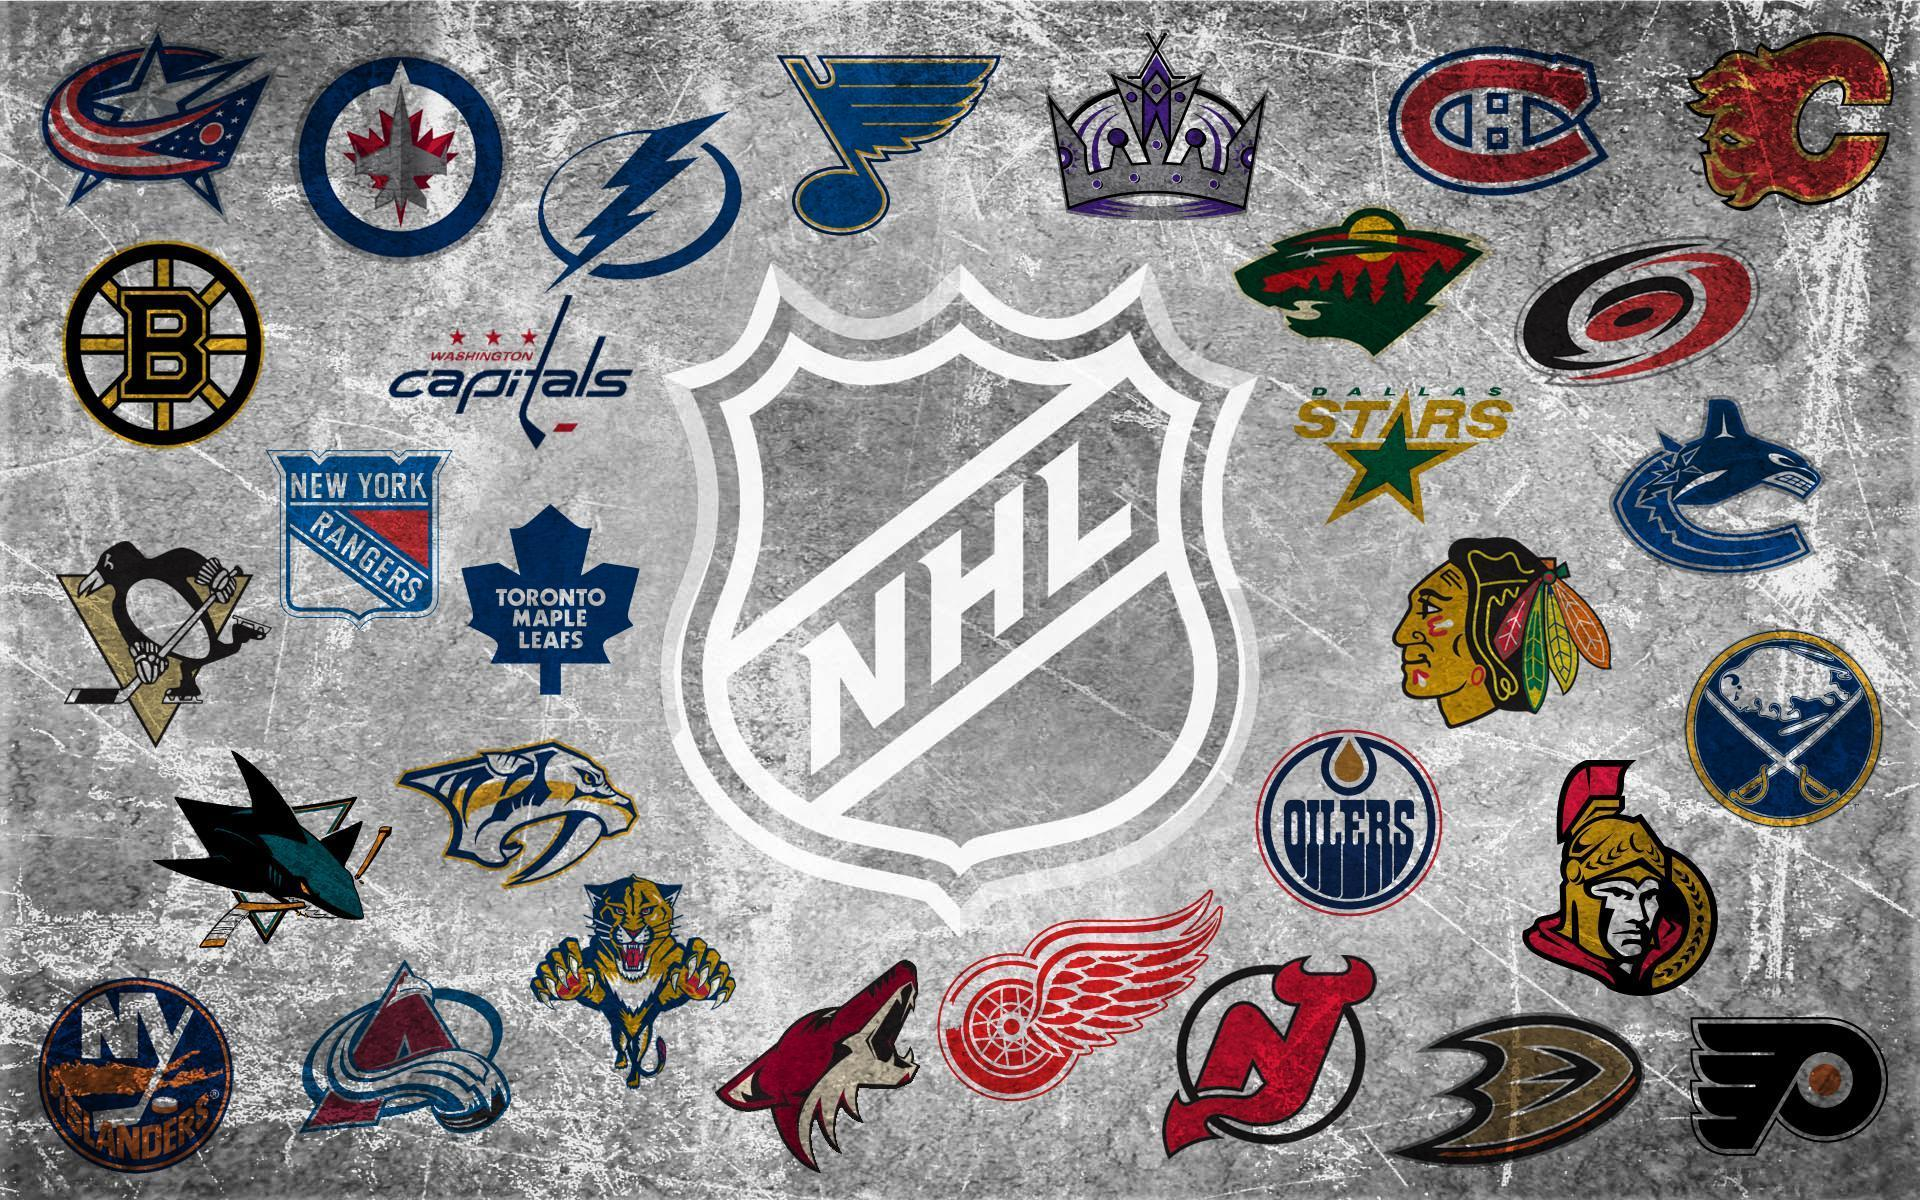 Nhl logo wallpapers wallpaper cave - Nhl hockey wallpapers ...